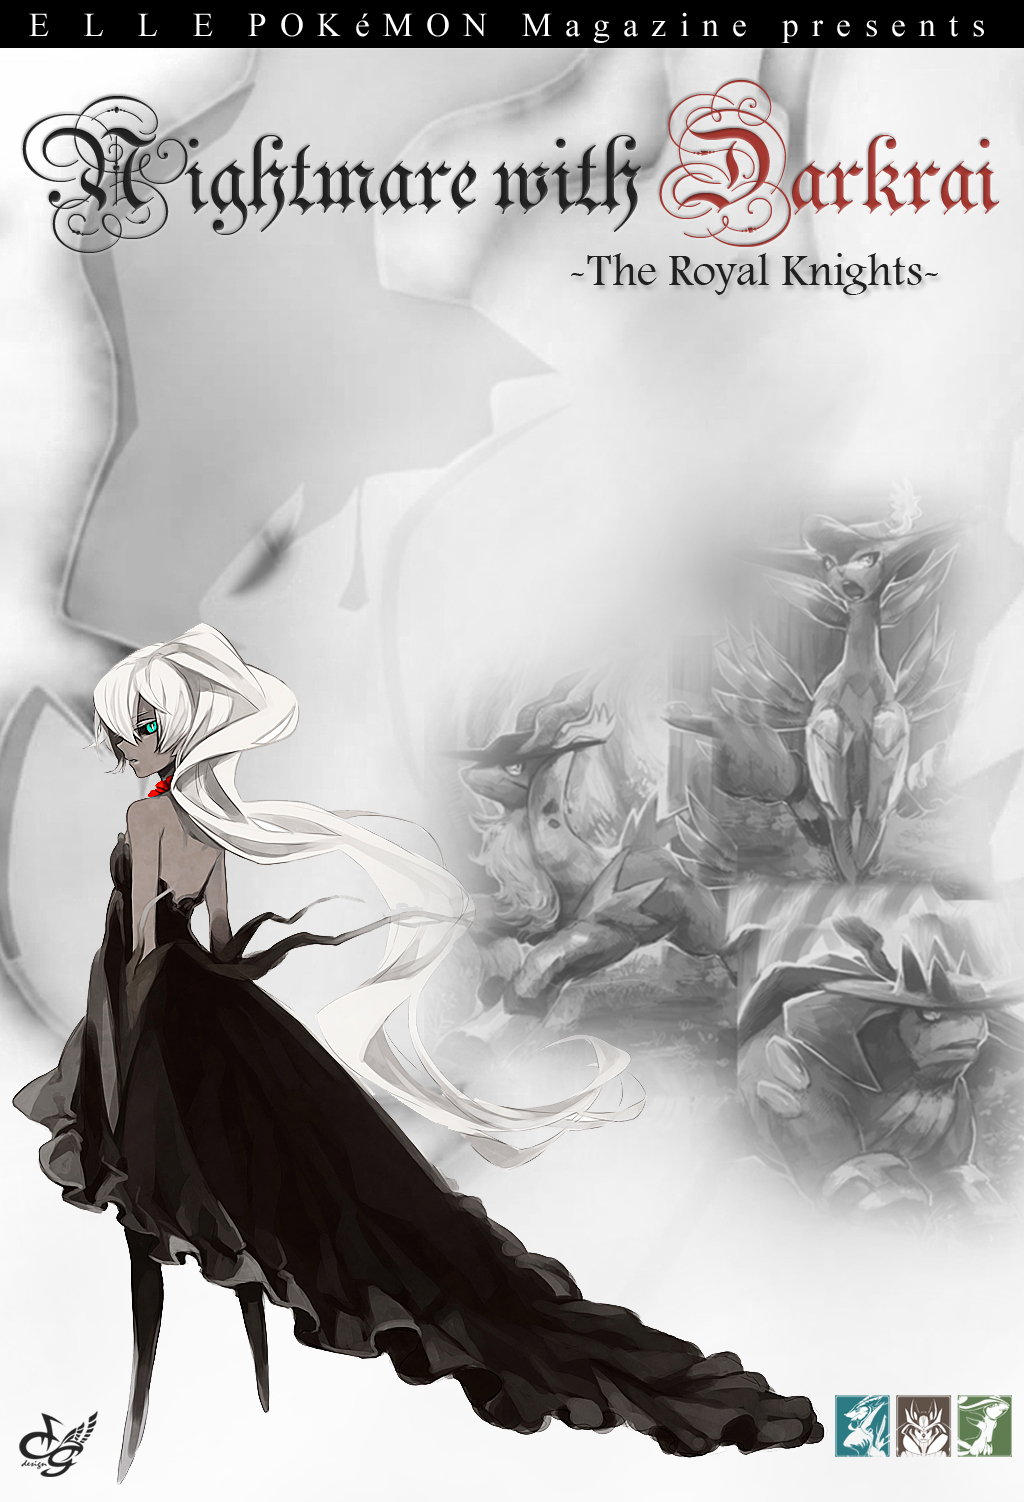 """Nightmare With Darkrai"" – The Royal Knights – Solemnity"